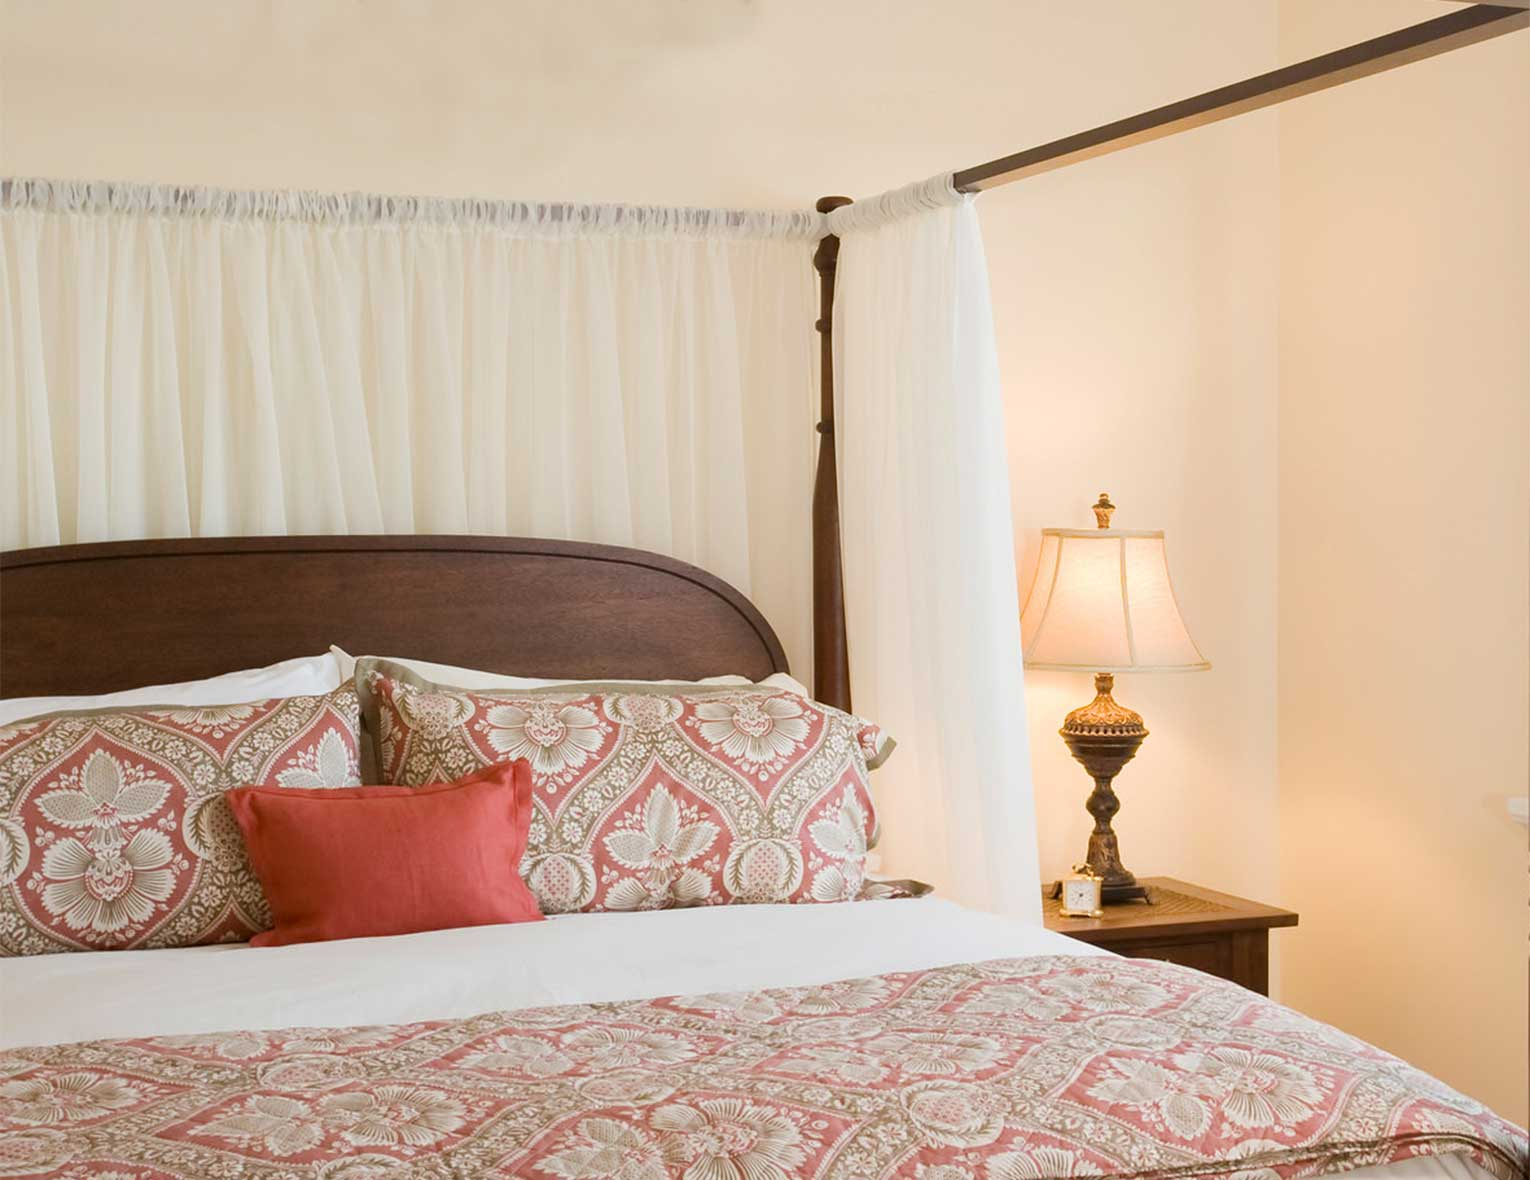 Room with bed and side table with lamp